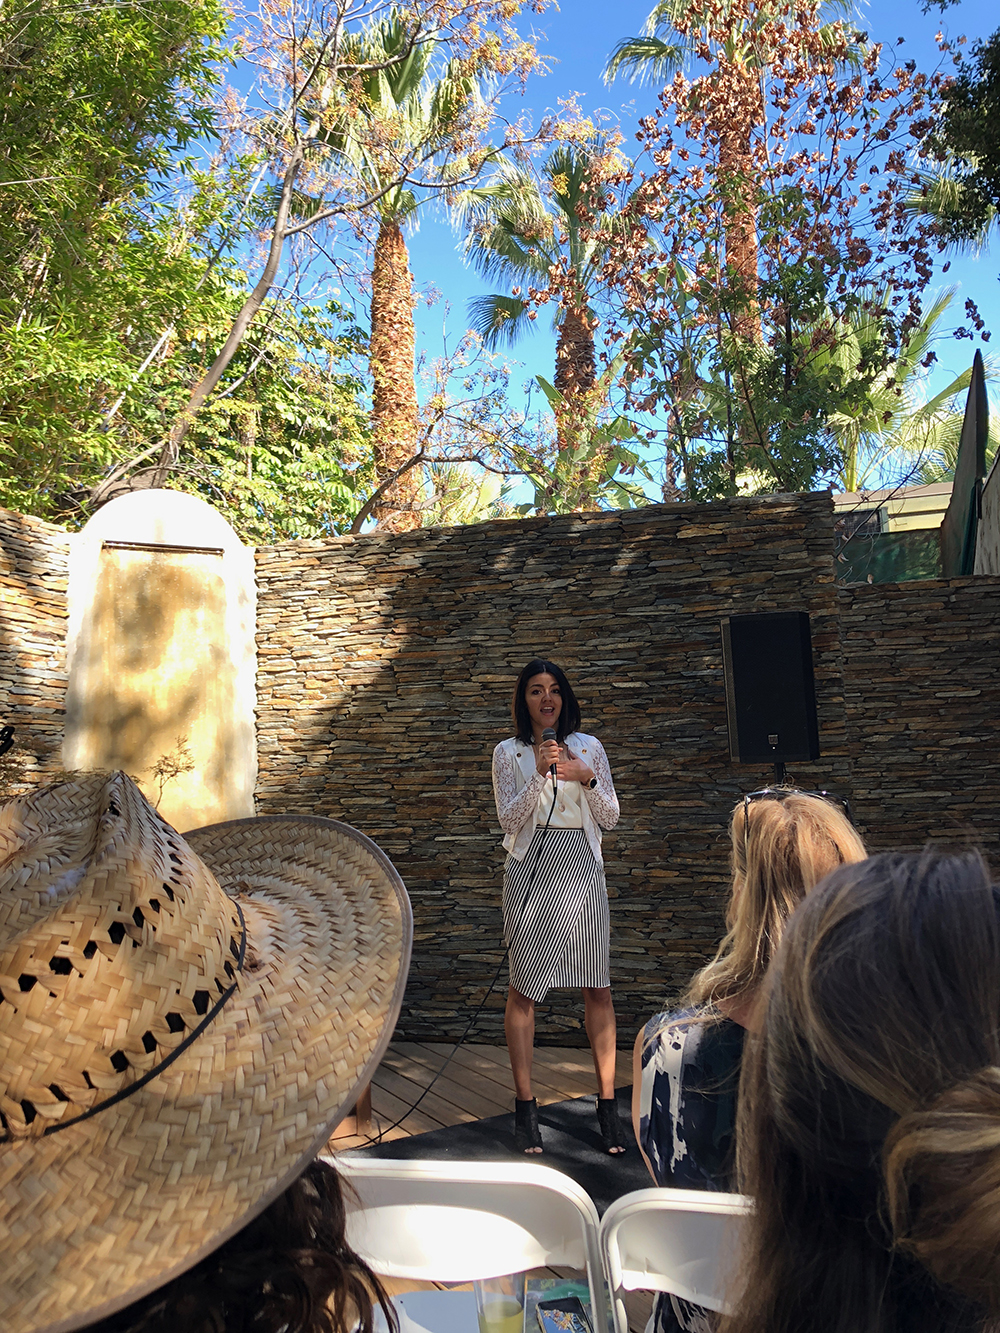 CBD Care Garden Founder/CEO Vanessa Marquez discussed the benefits of CBD and dispelled some common myths surrounding it. [Image courtesy of The Spa Insider]